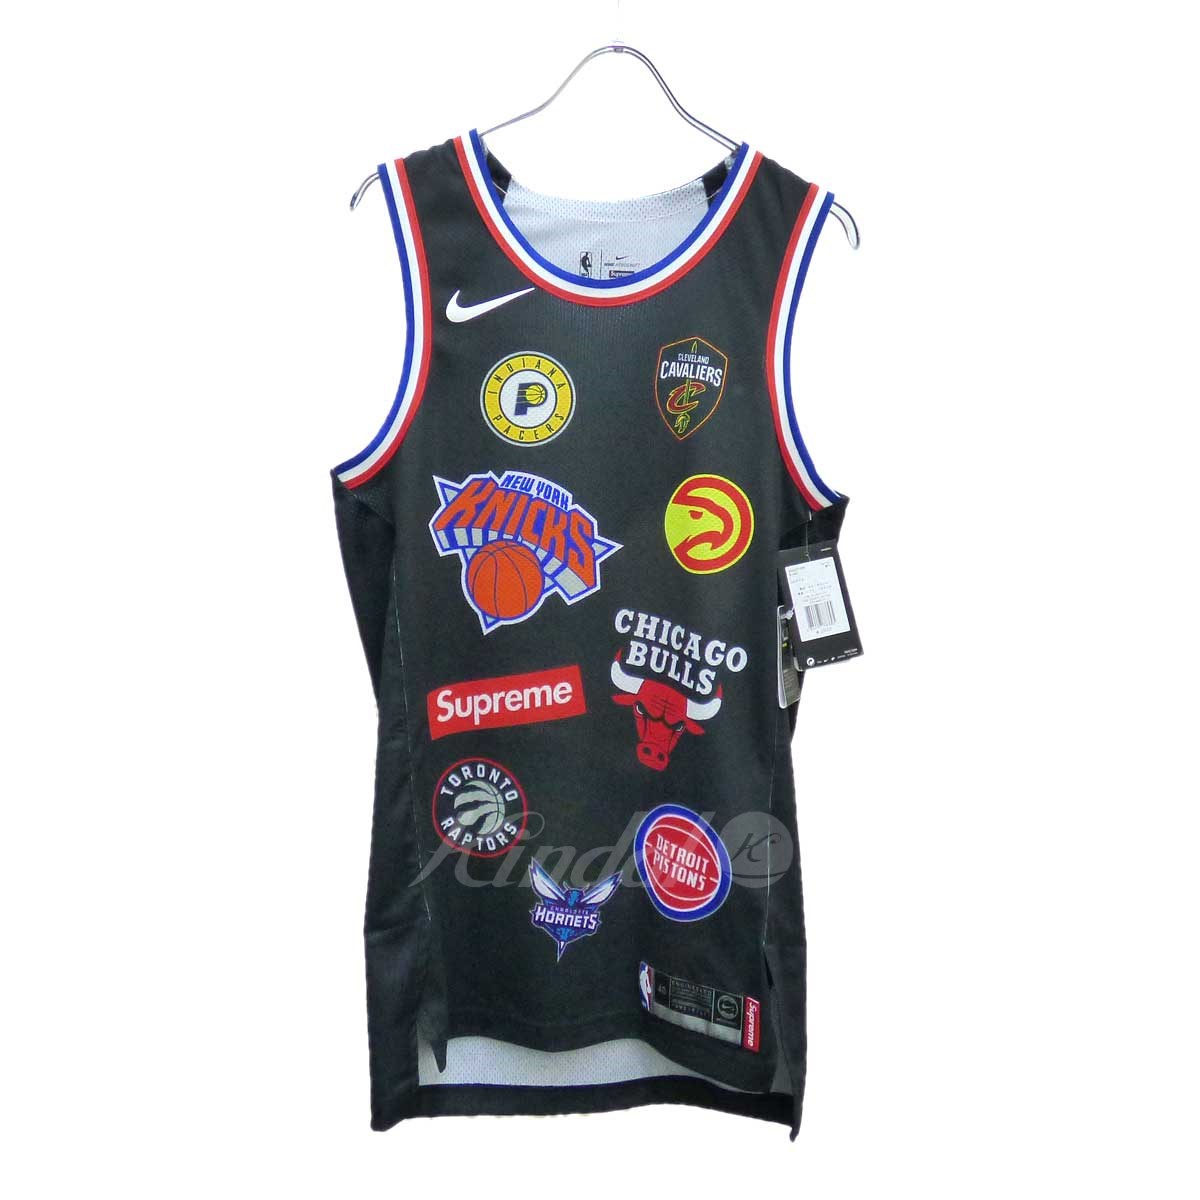 【中古】Supreme x NIKE NBA Teams Authentic Jersey タンクトップ 【送料無料】 【107629】 【KIND1499】